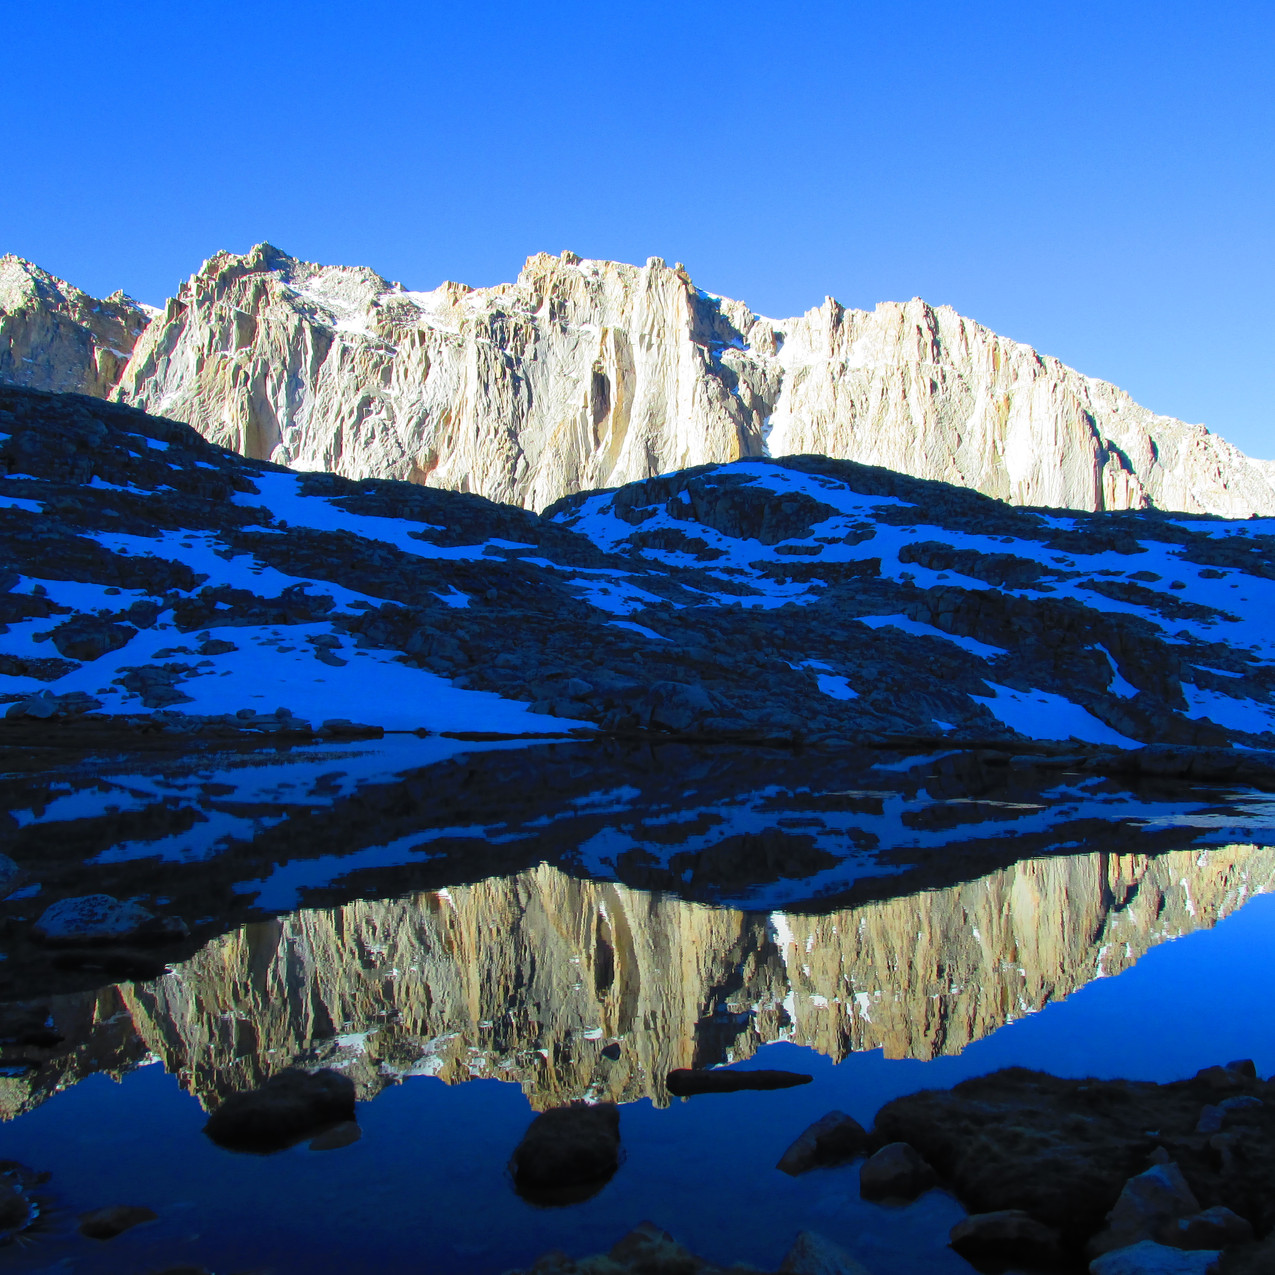 On the way up to the summit of Mt. Whitney, I got some nice reflections in the lake.